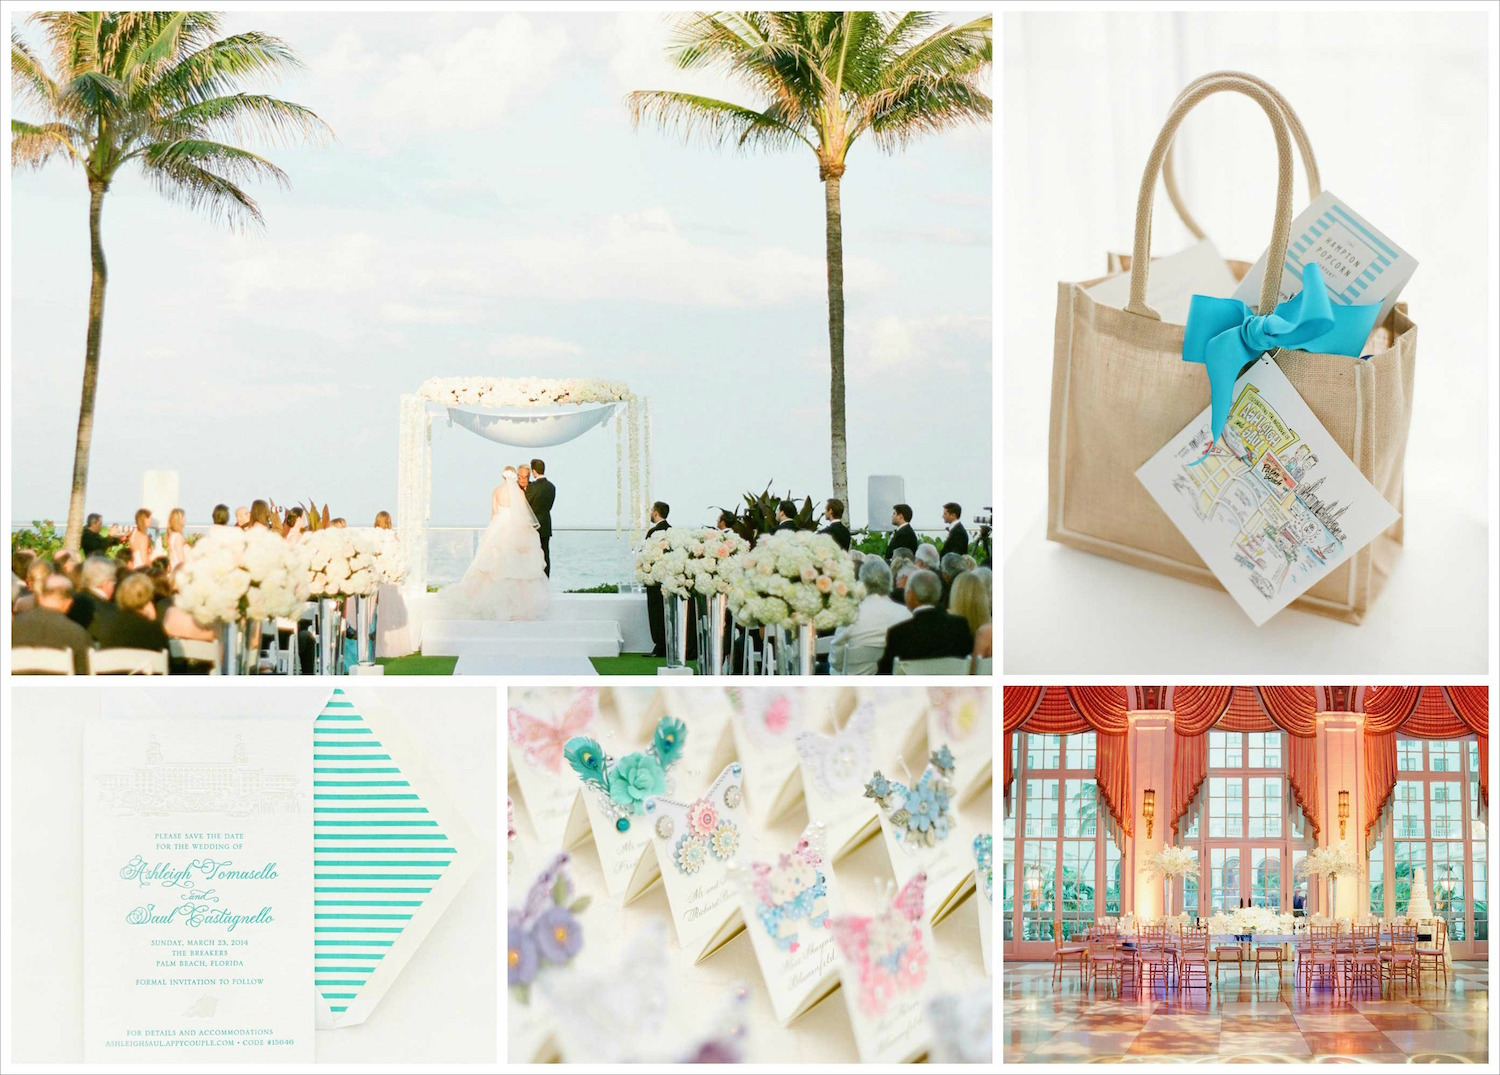 Destination Wedding Ideas: 10 Real Wedding Locations - Inside Weddings